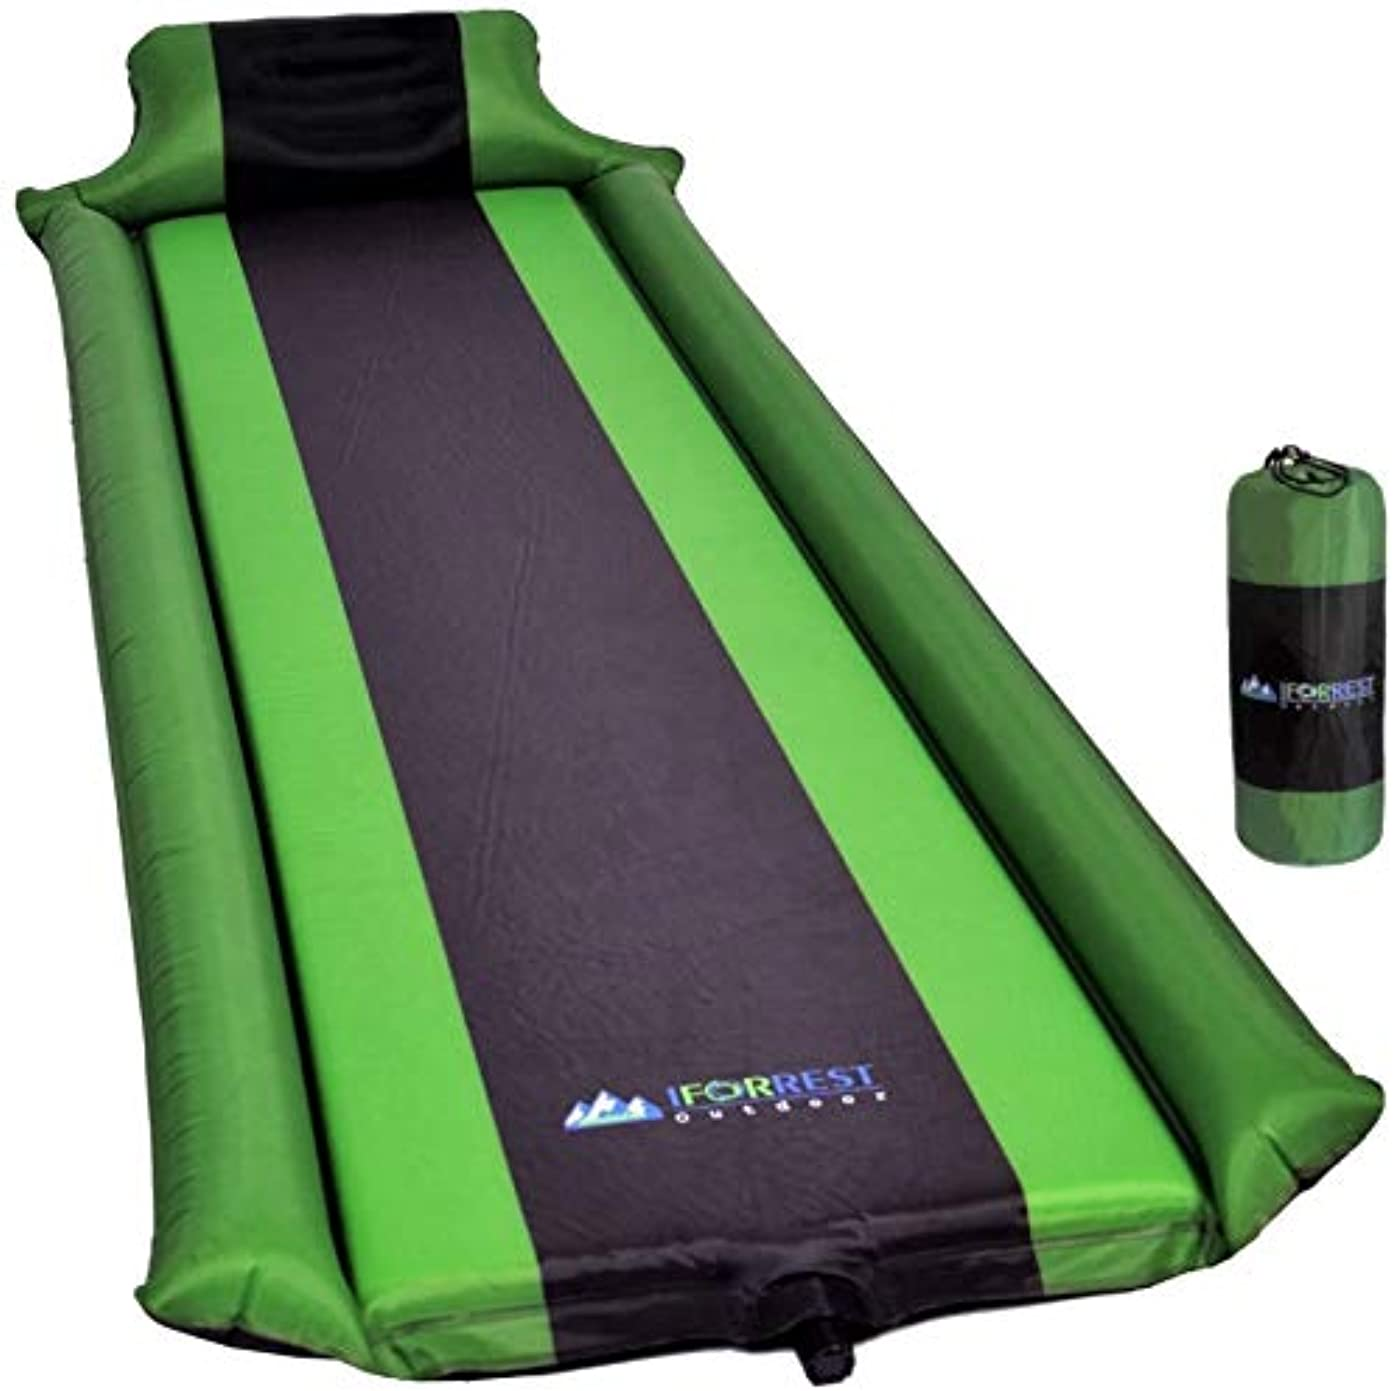 ブラスト悩む報酬のIFORREST Sleeping Pad with Armrest and Pillow - Ultra Comfortable Self-Inflating Camping Pad - Ideal for Travel, Hiking, Backpacking, Cot and Hammock! (Green) 141[並行輸入]